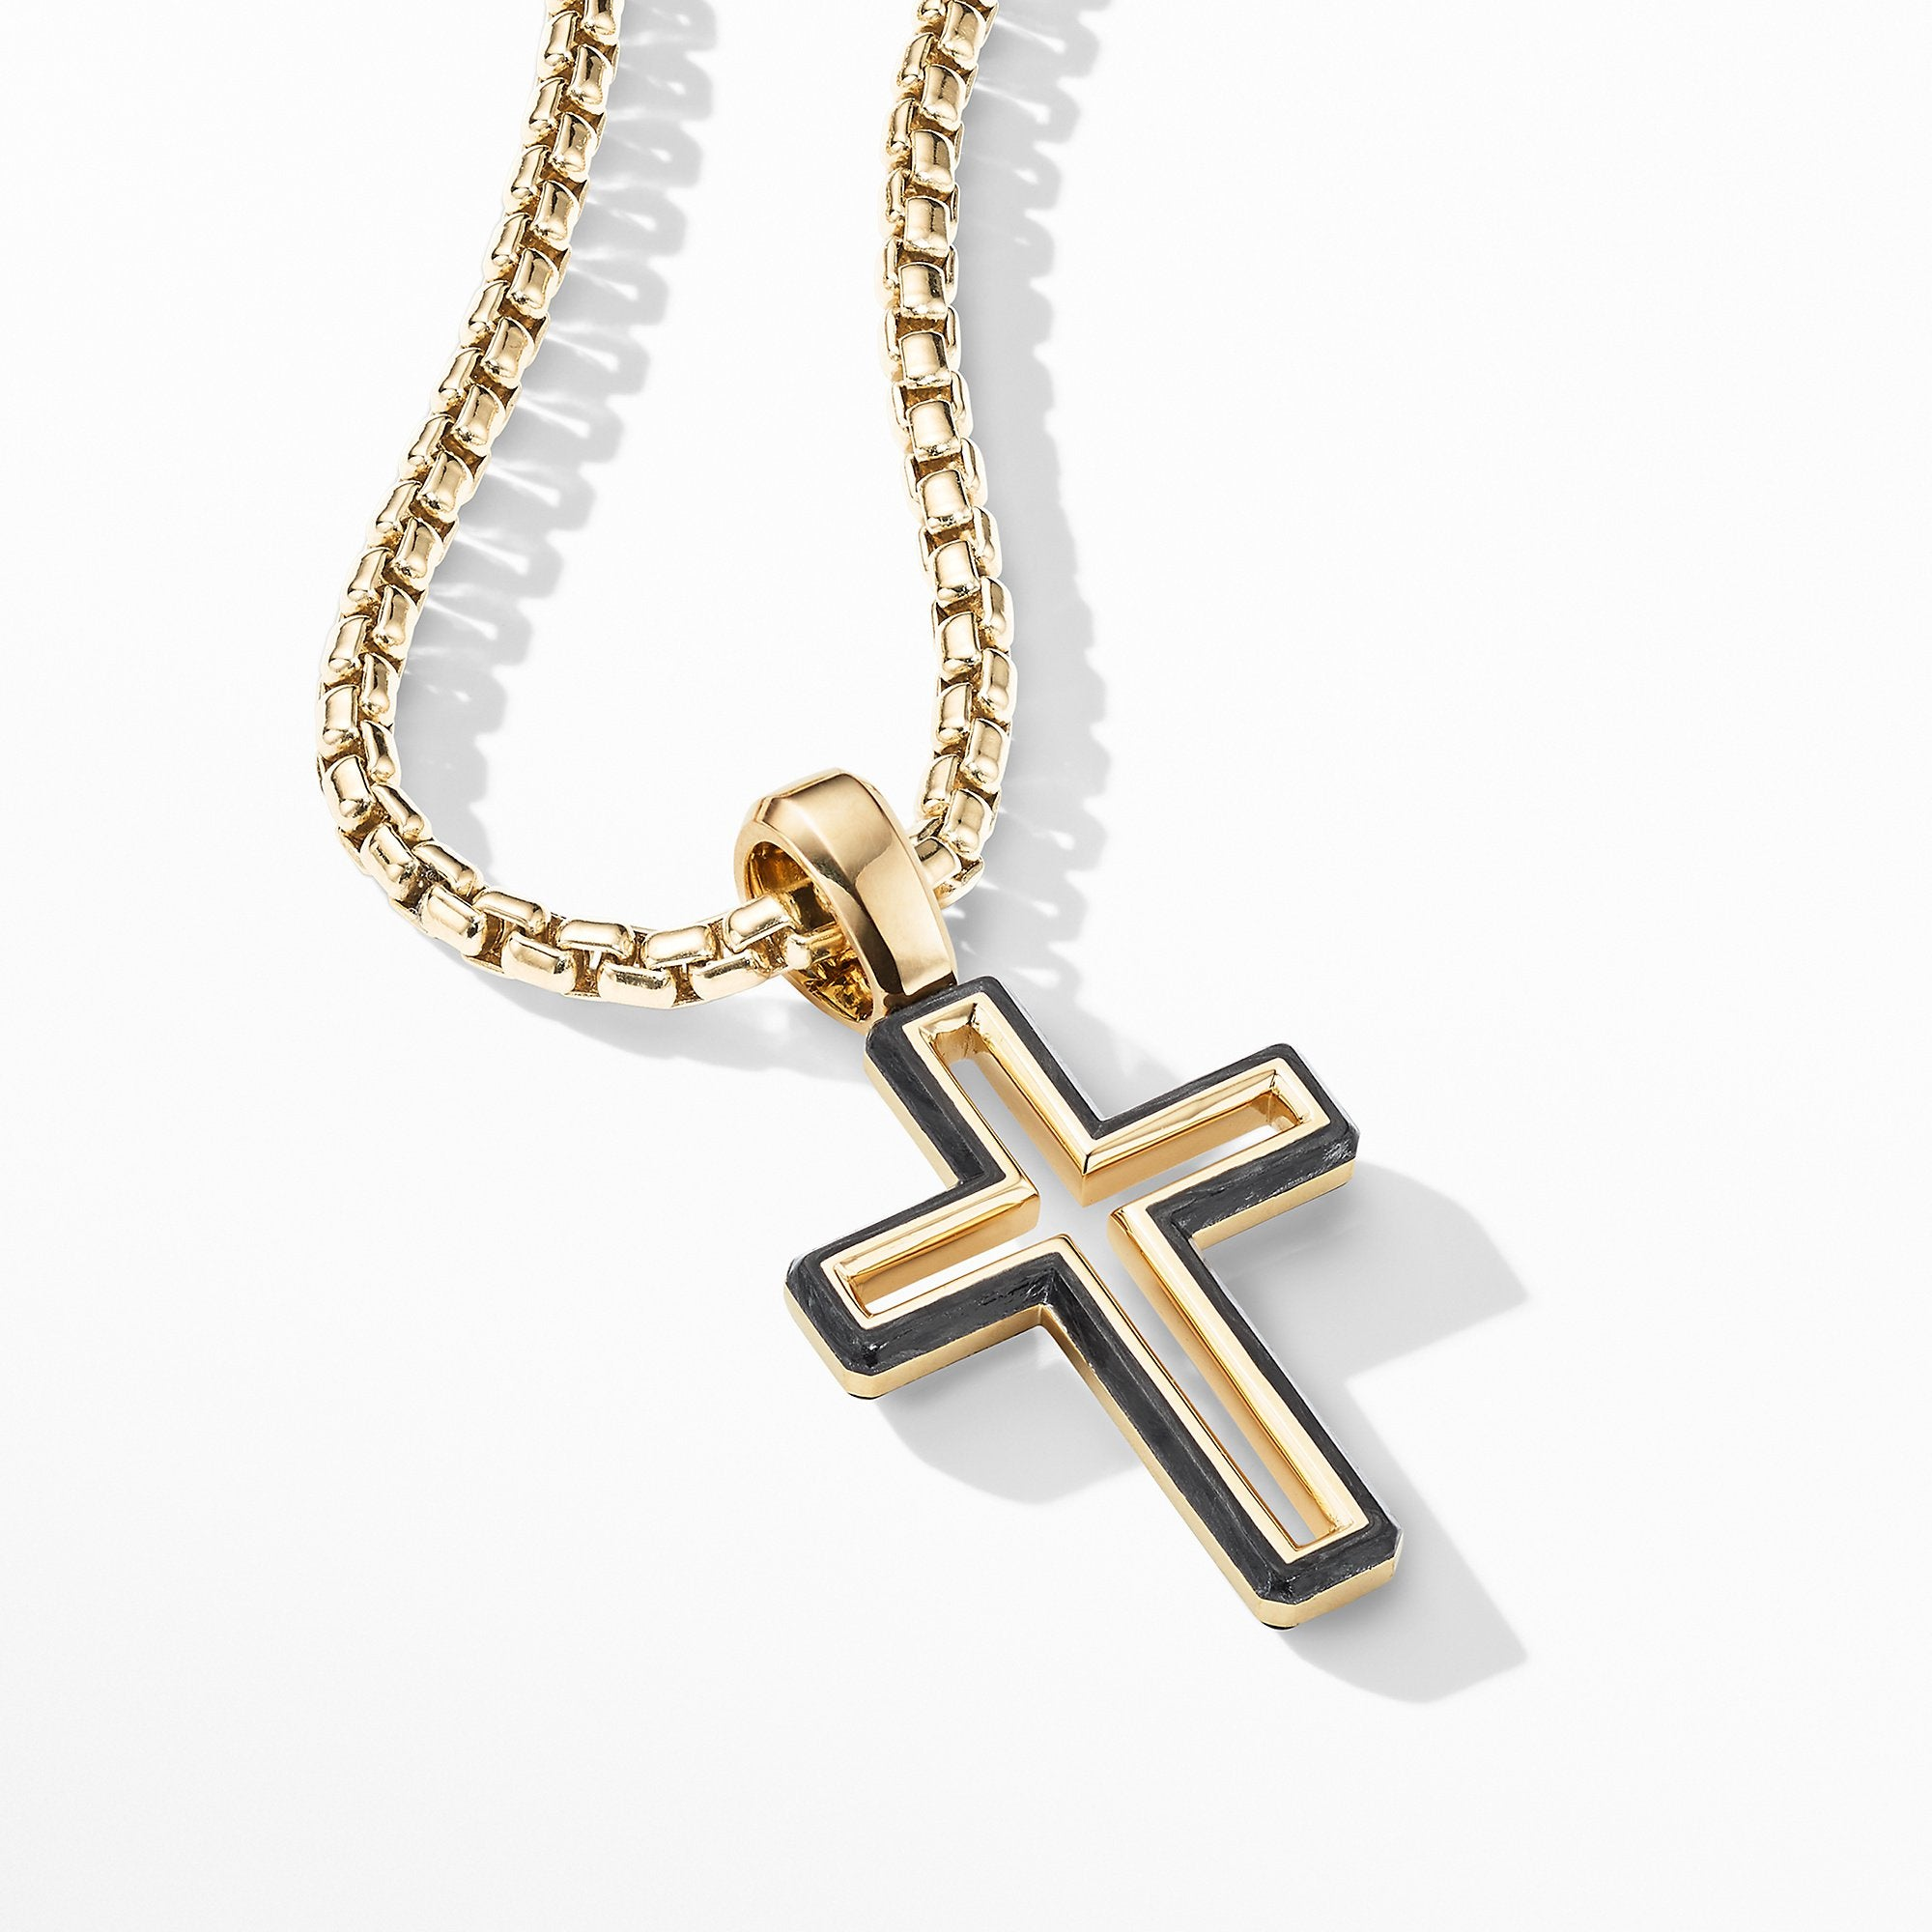 Forged Carbon Cross Pendant with 18K Gold